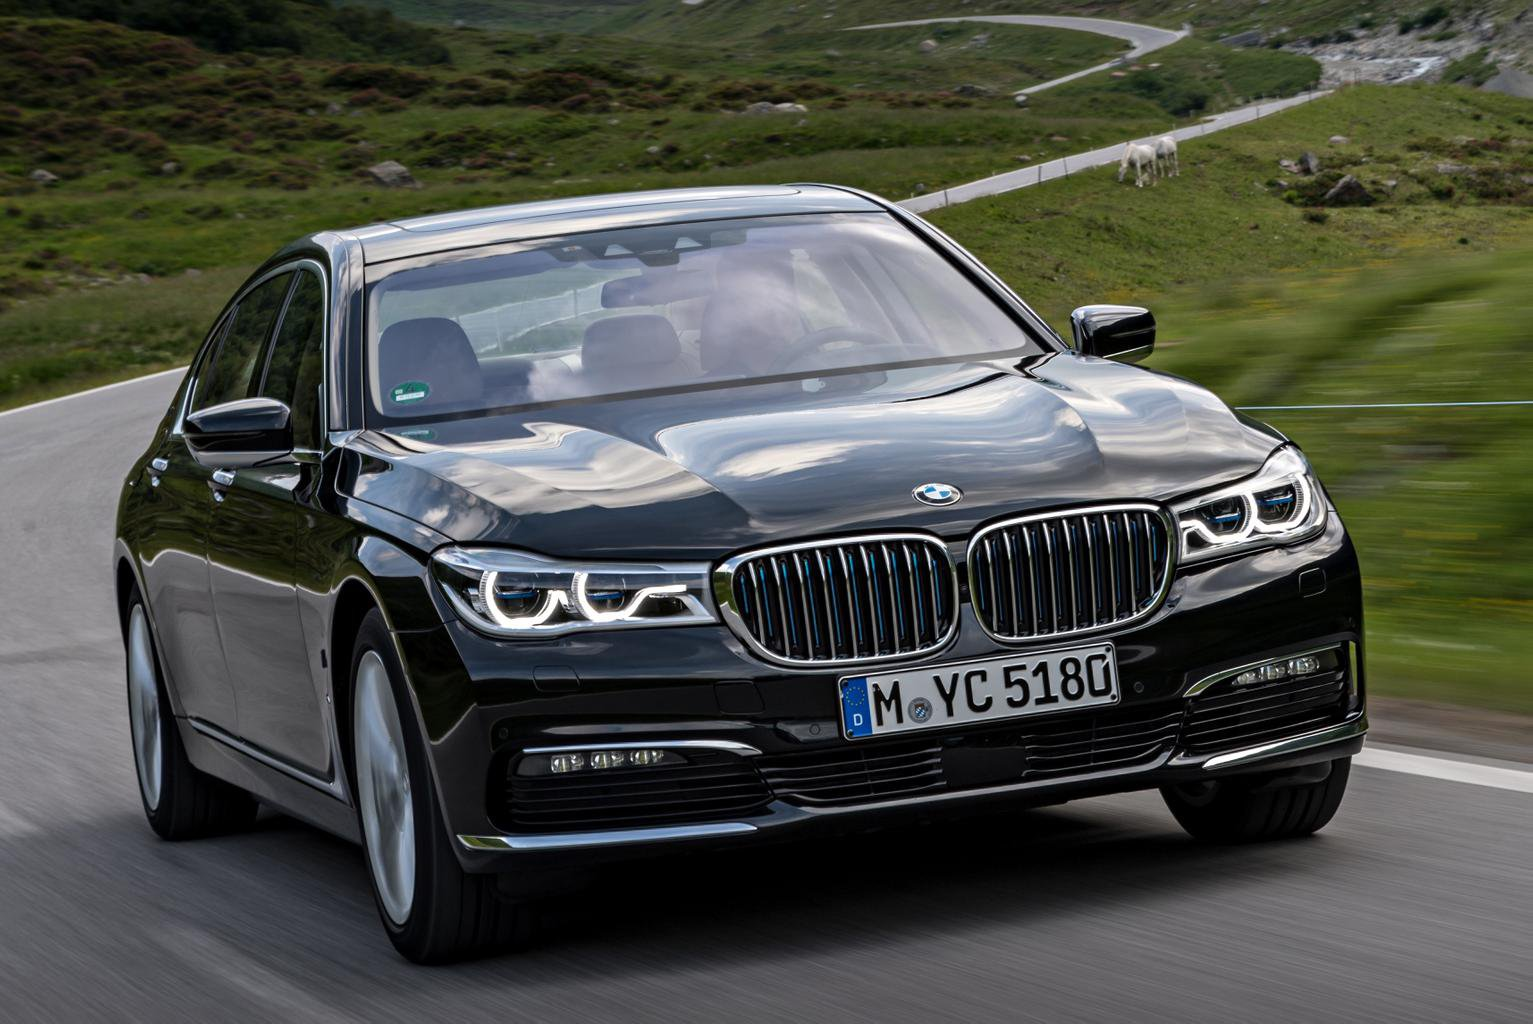 2020 BMW 740Le XDrive Specs, Redesign And Rumors >> 2016 Bmw 740le Xdrive Review What Car